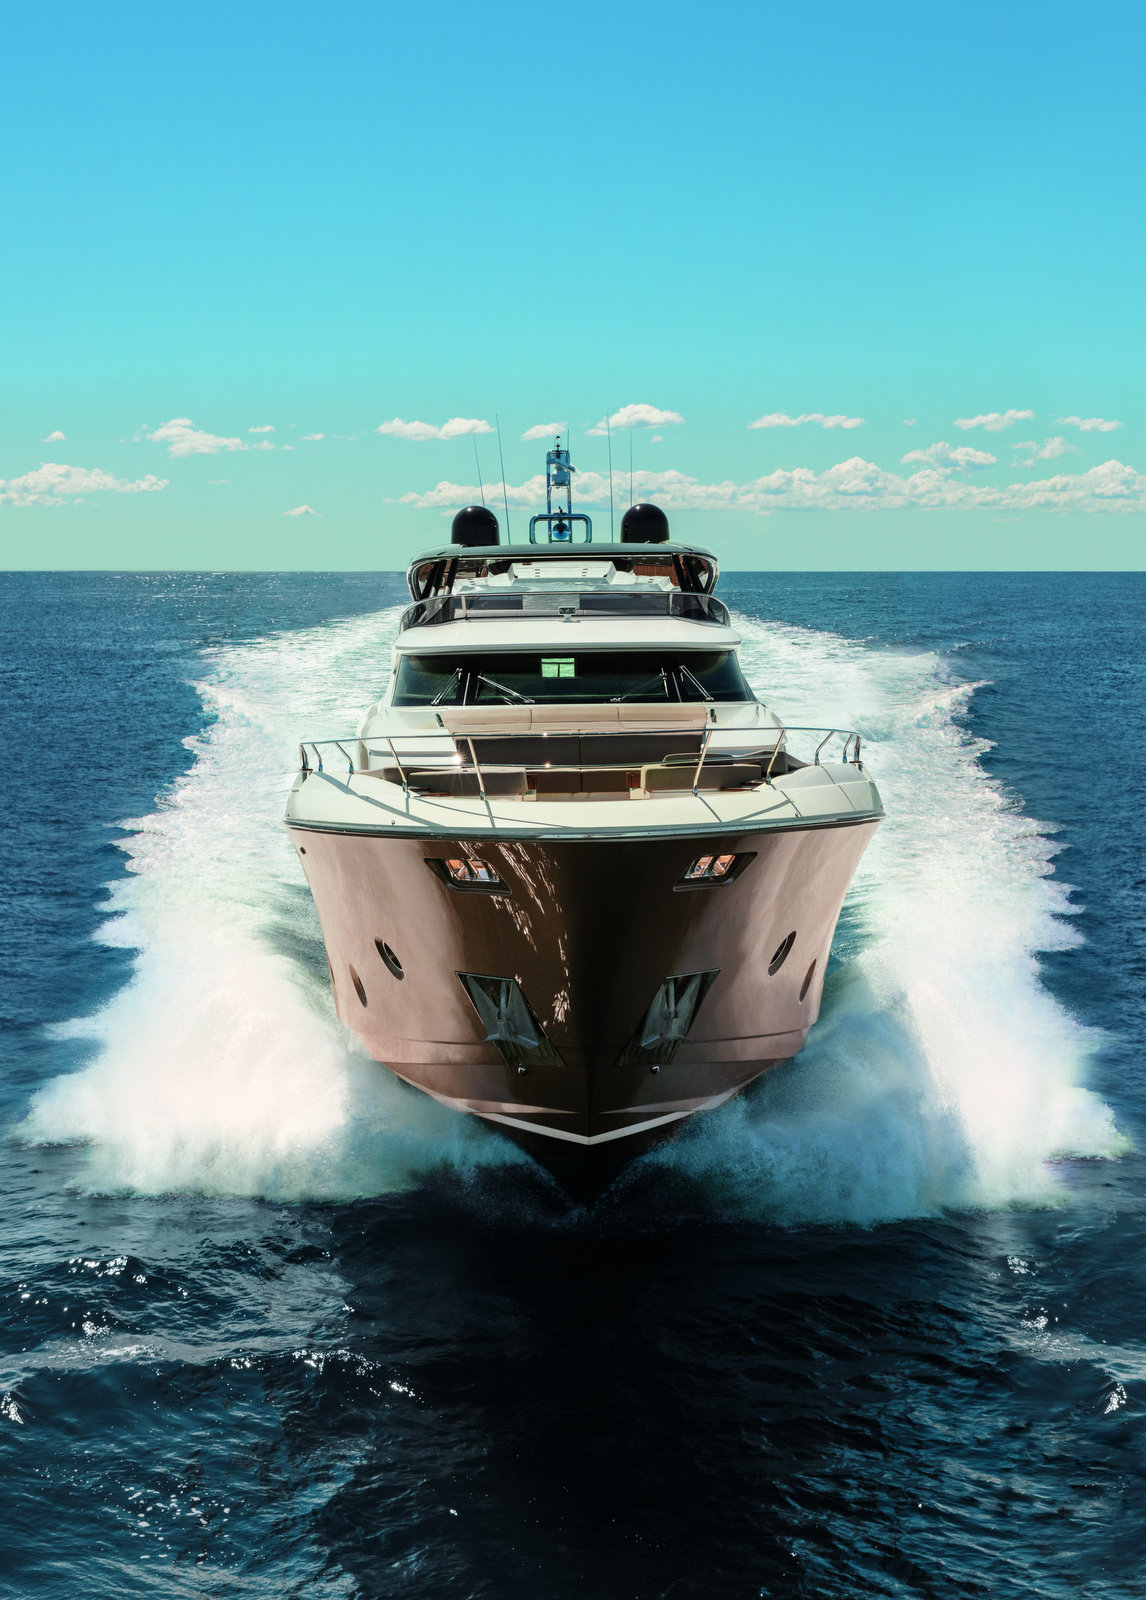 bow-running-shot-of-the-monte-carlo-yachts-96-mia